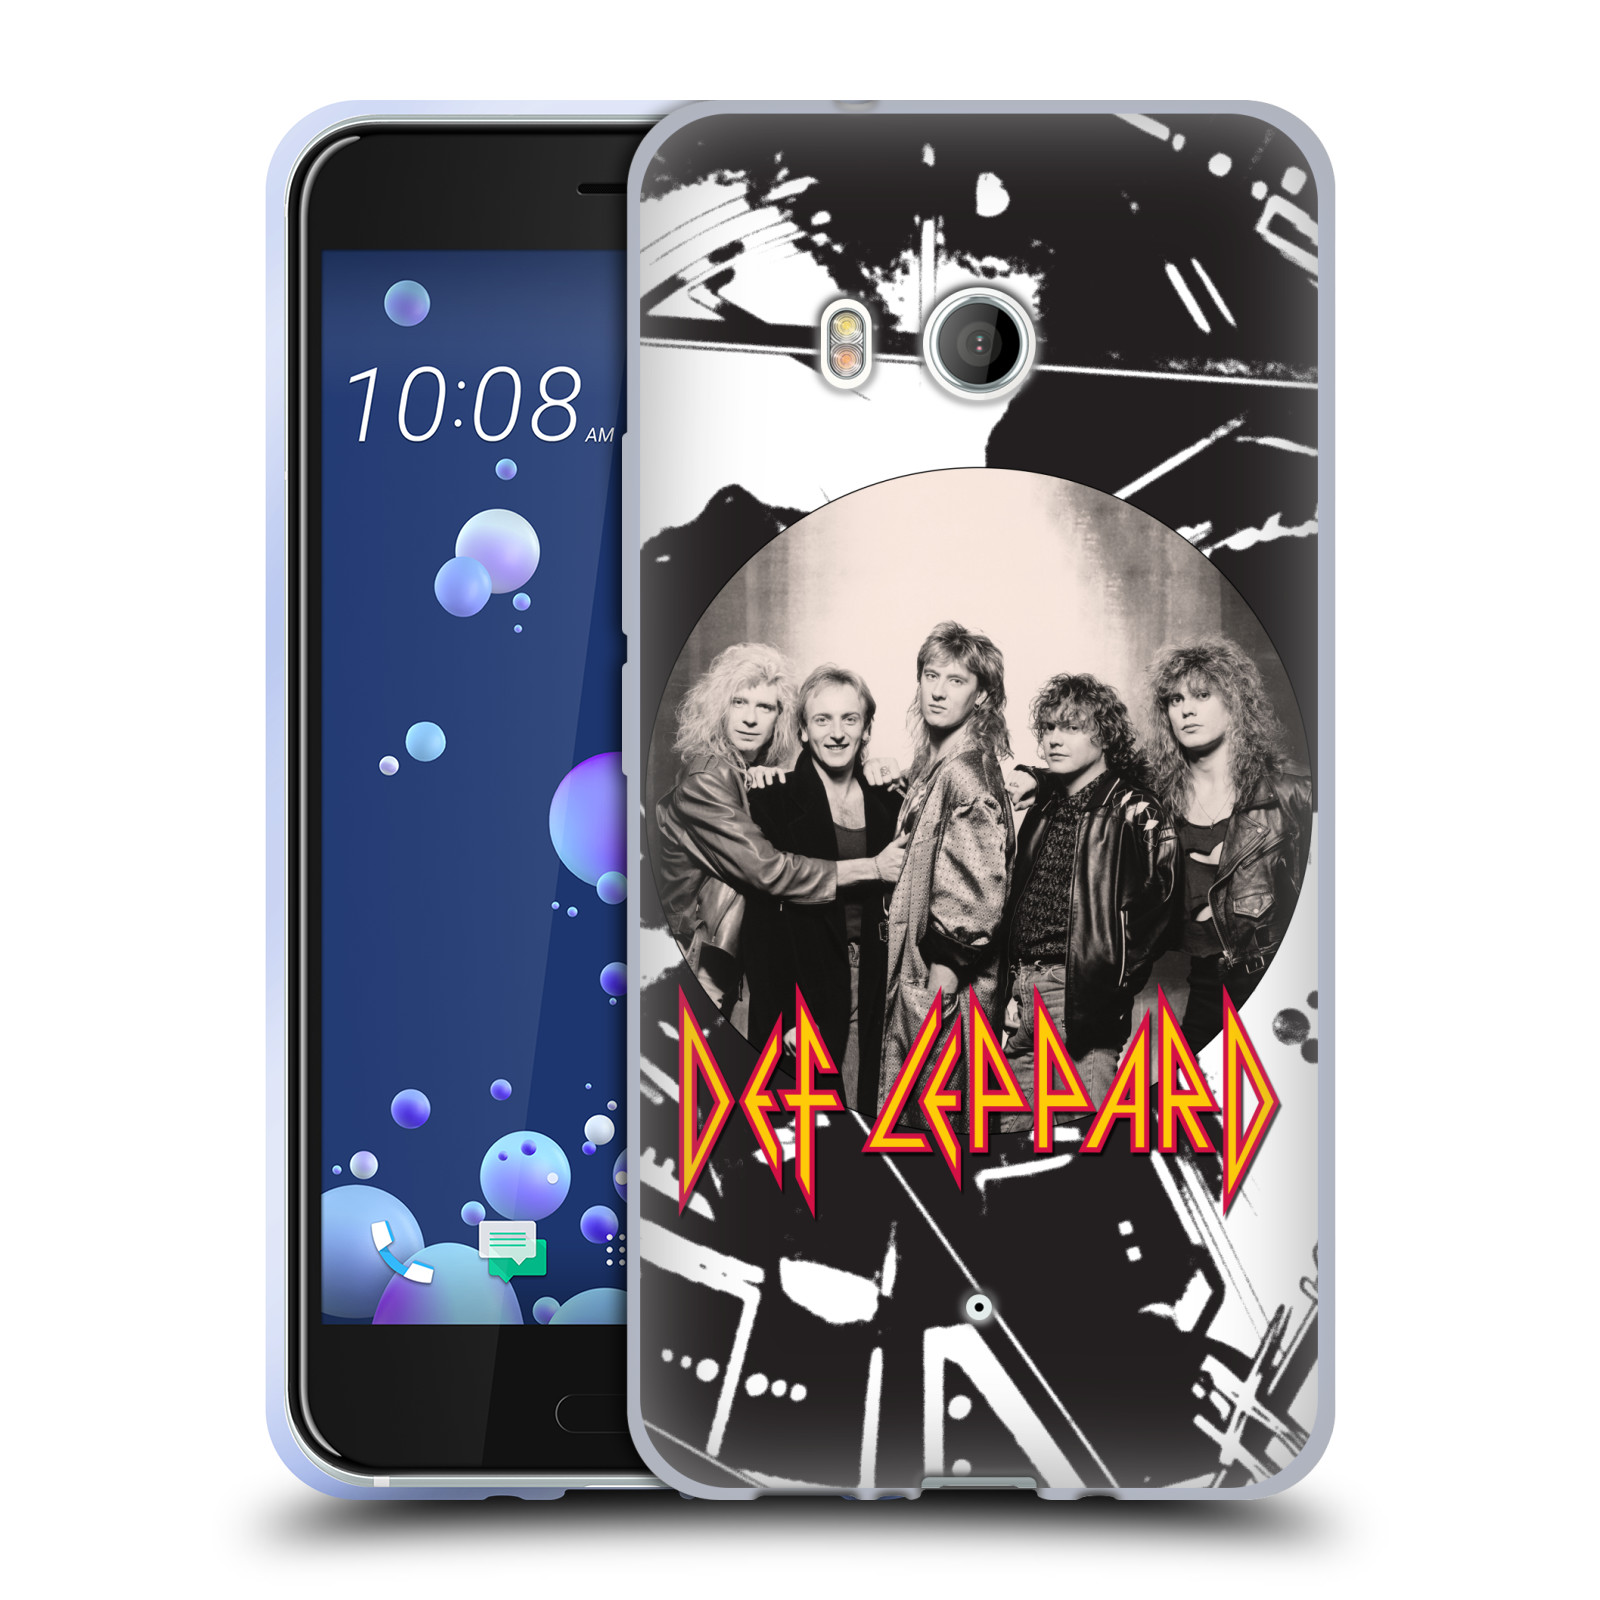 OFFICIAL-DEF-LEPPARD-PHOTOS-SOFT-GEL-CASE-FOR-HTC-PHONES-1